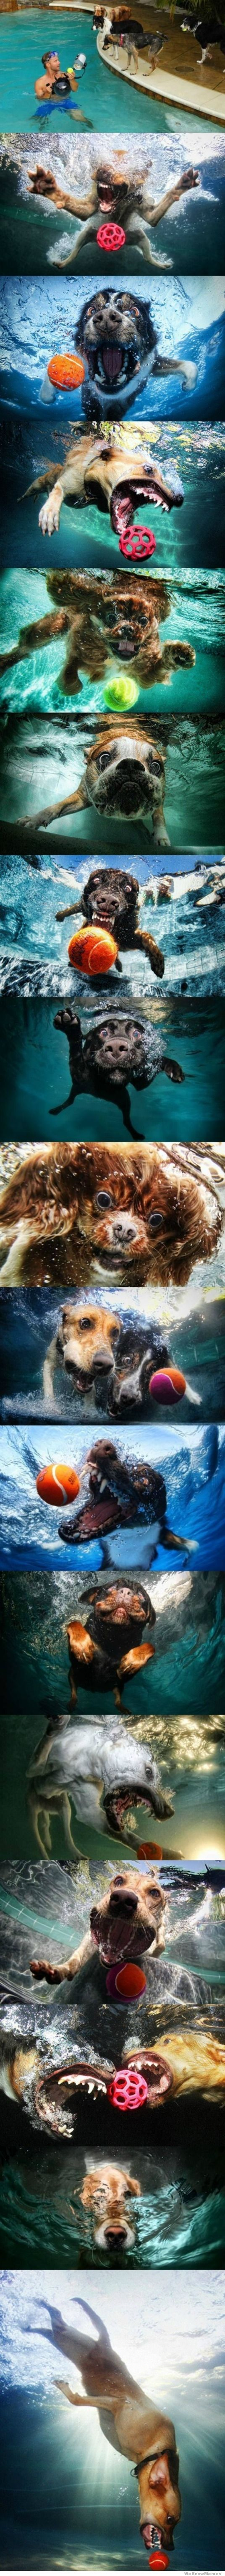 Seth Casteel, the author of Underwater Dogs was on our show last week.  Very cool guy helping rescue pets! Check out podcast episode 137 at www.tppc.tv.